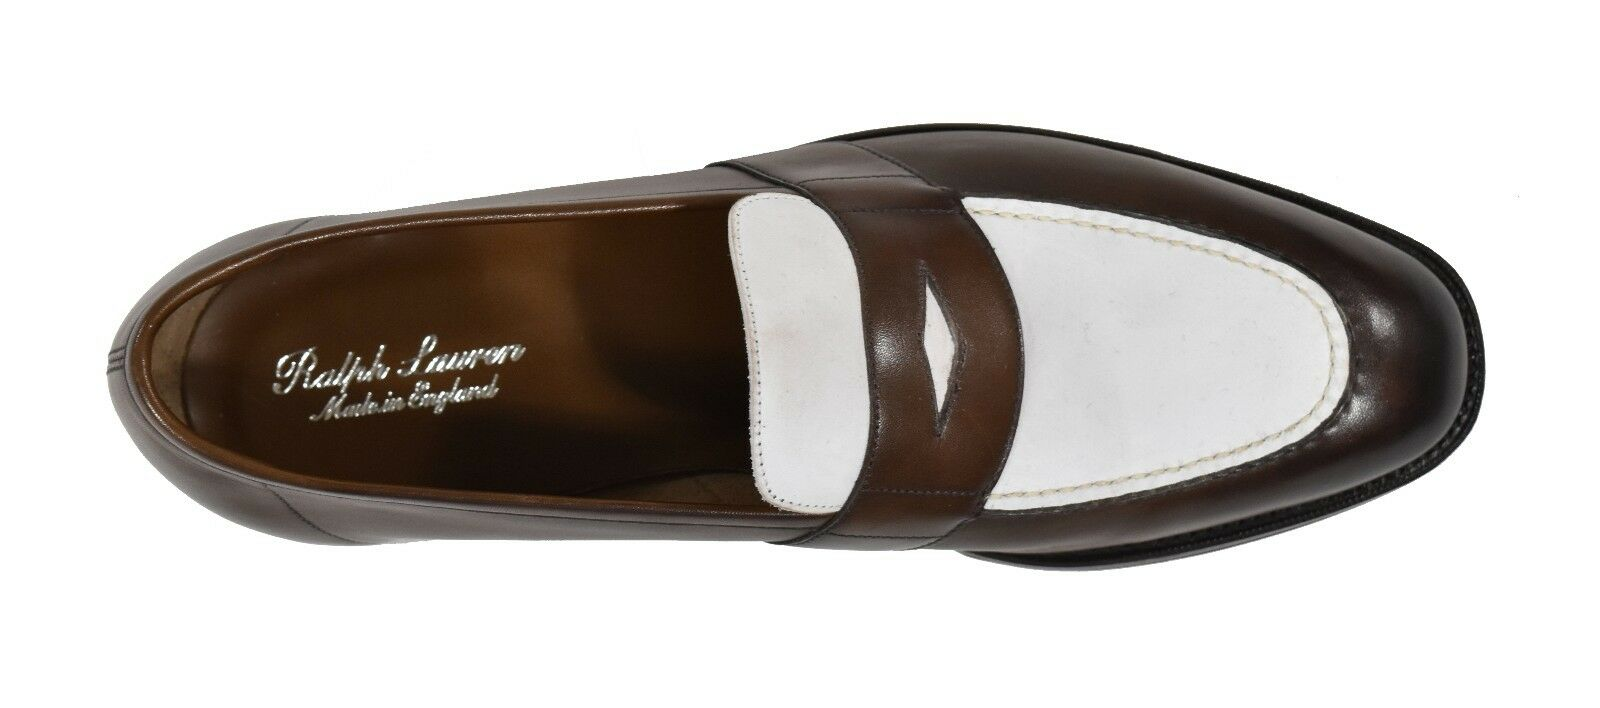 Ralph Loafers Lauren Purple Label Edward Green Pelle Tarlton Loafers Ralph 10 D New  1250 88874a